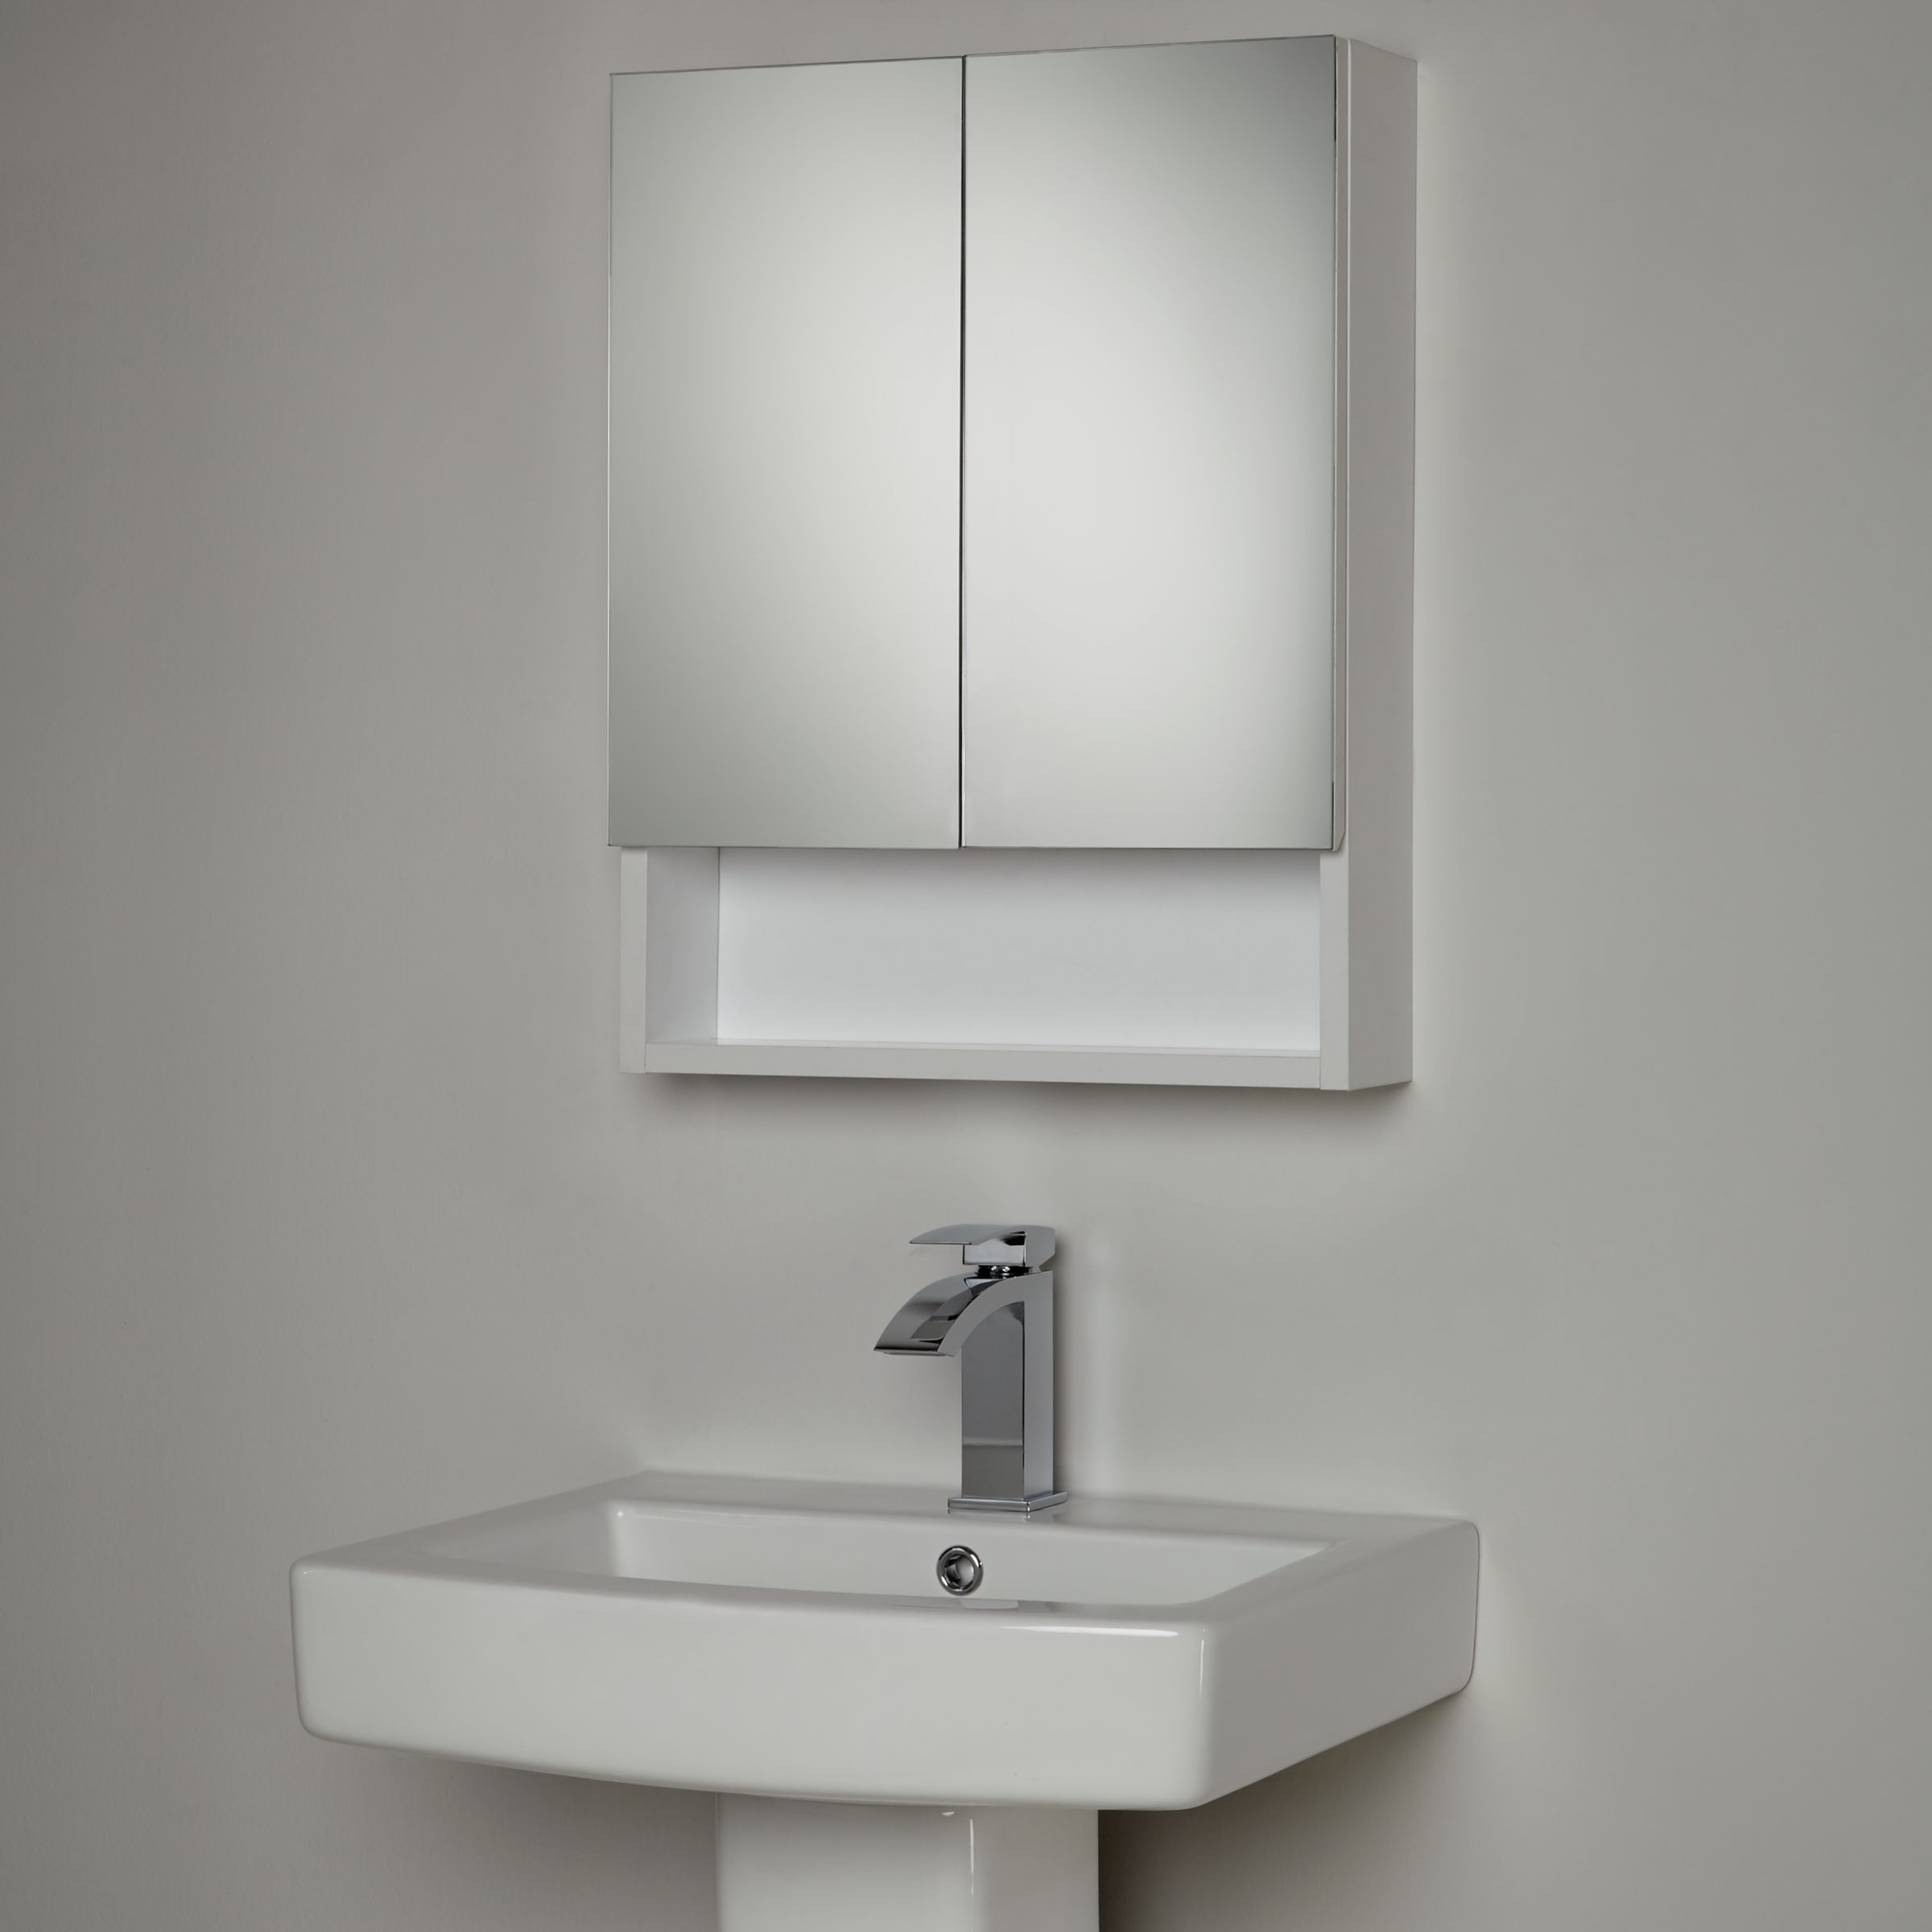 john lewis bathroom cabinet house by lewis equate mirrored bathroom octer 163 95 00 18944